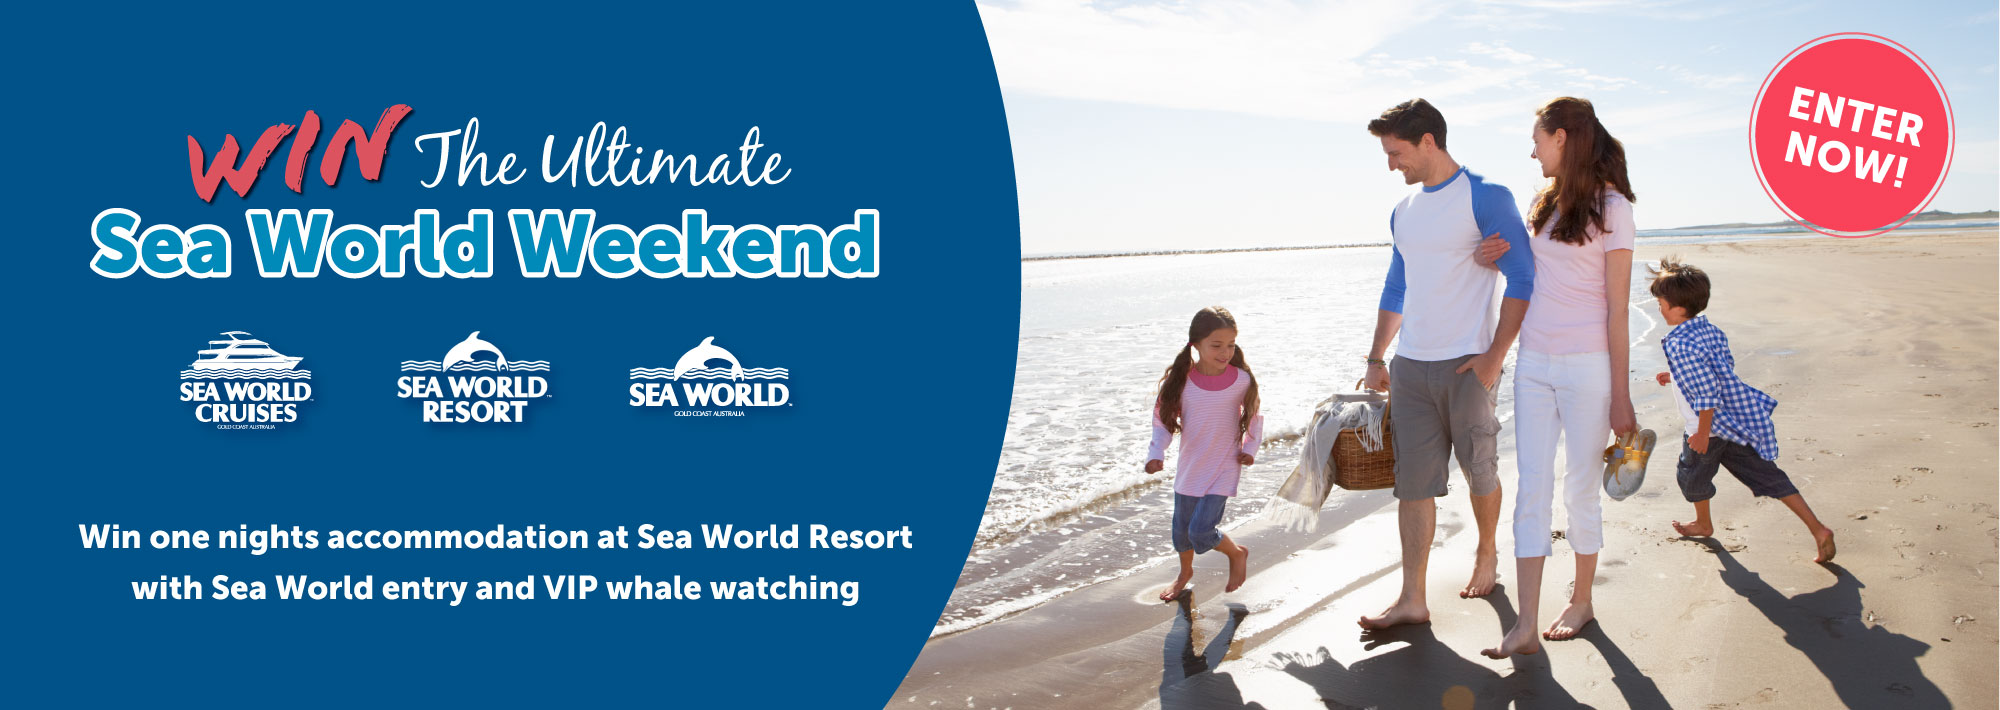 WIN The Ultimate Sea World Weekend